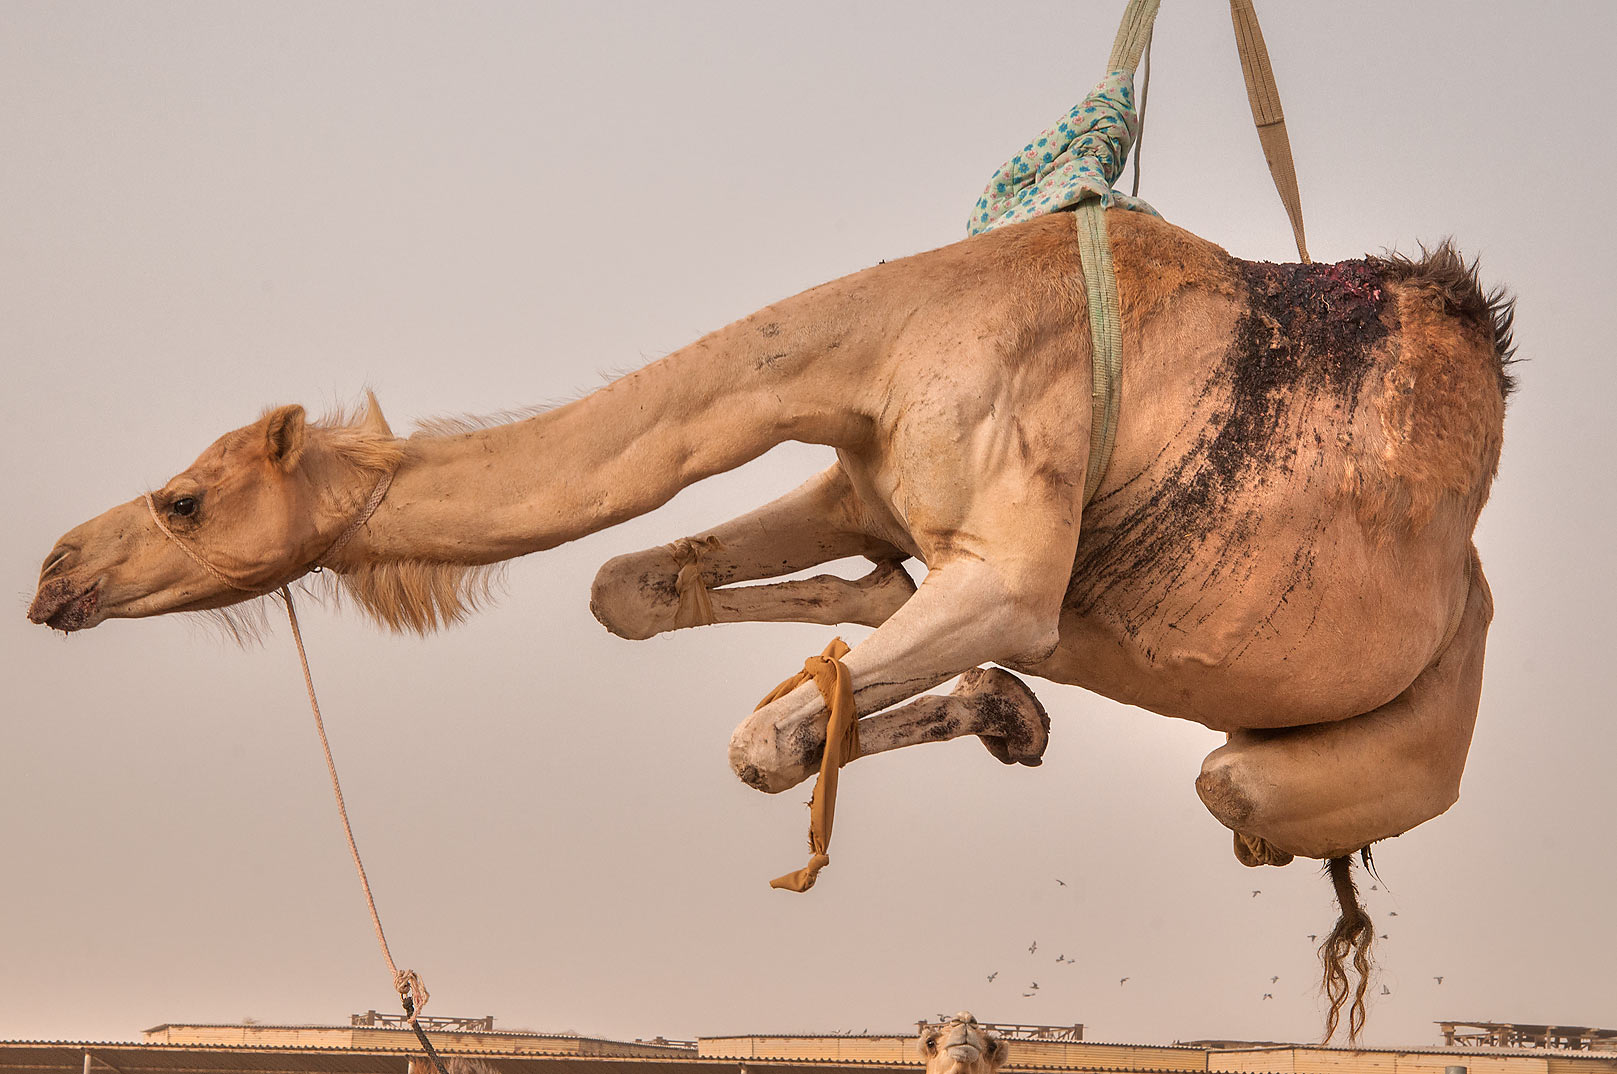 Camel with injured hump suspended on hydraulic...Market, Abu Hamour area. Doha, Qatar